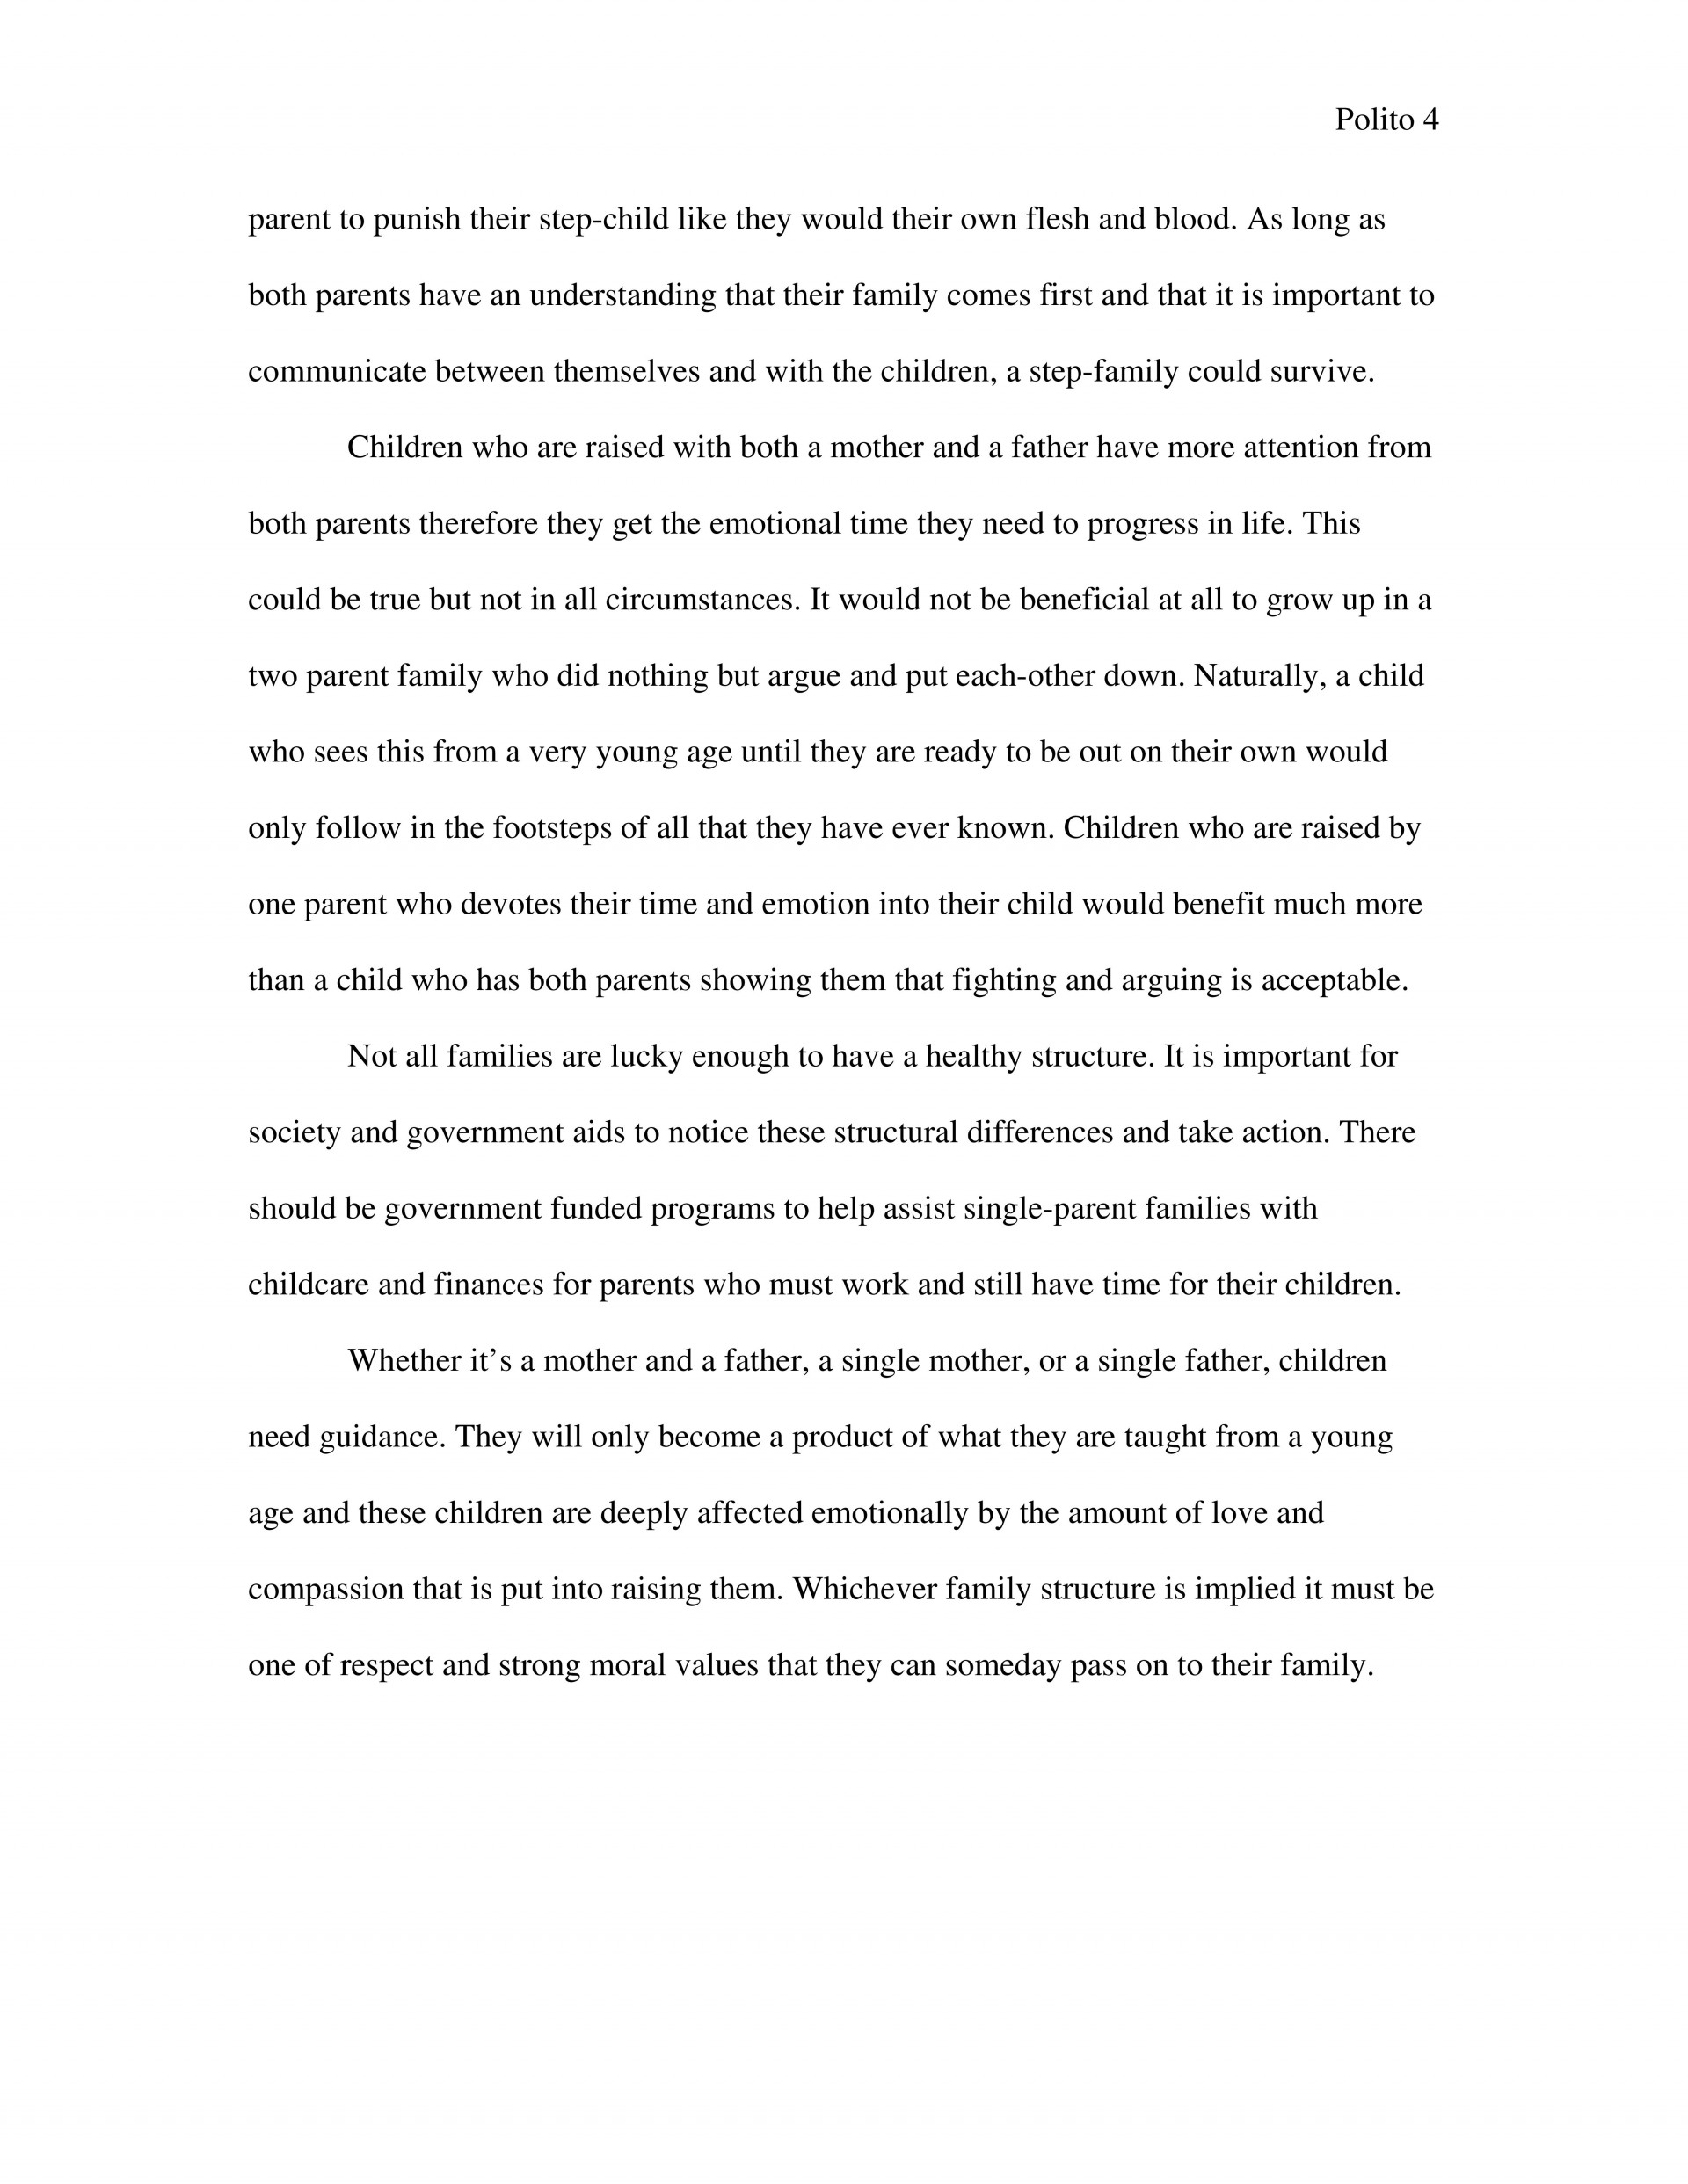 012 Essay Example Expository Sample 2 Impressive Samples Topics Grade 5 O Level Essays For High School Students 1920